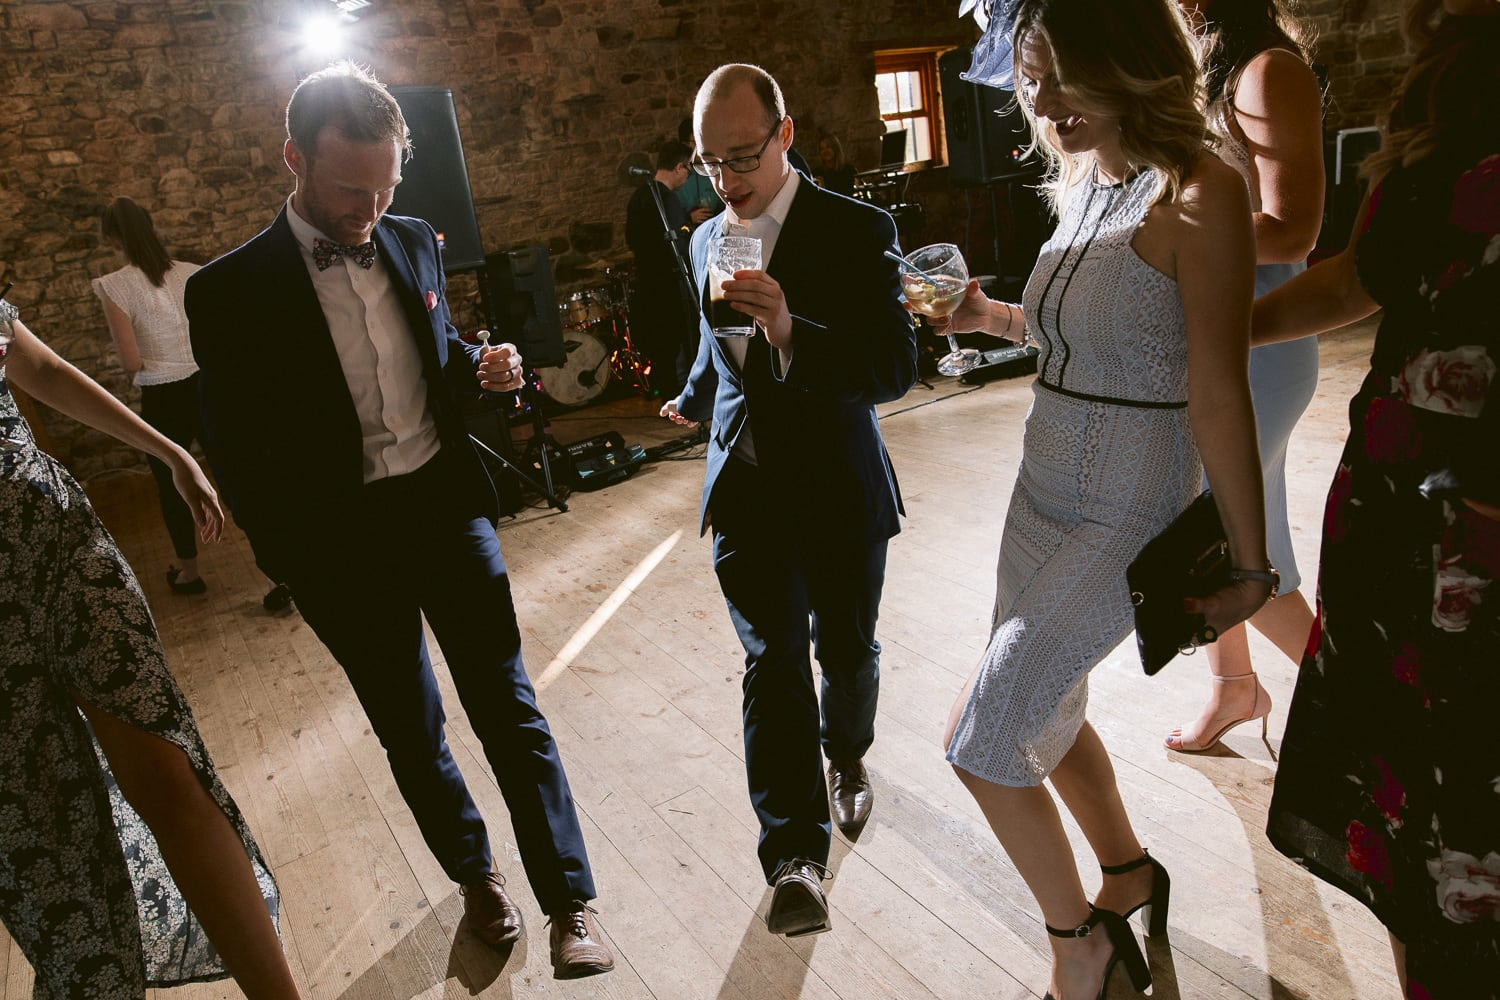 Guests Dancing in Main Hall Portrait Shooting